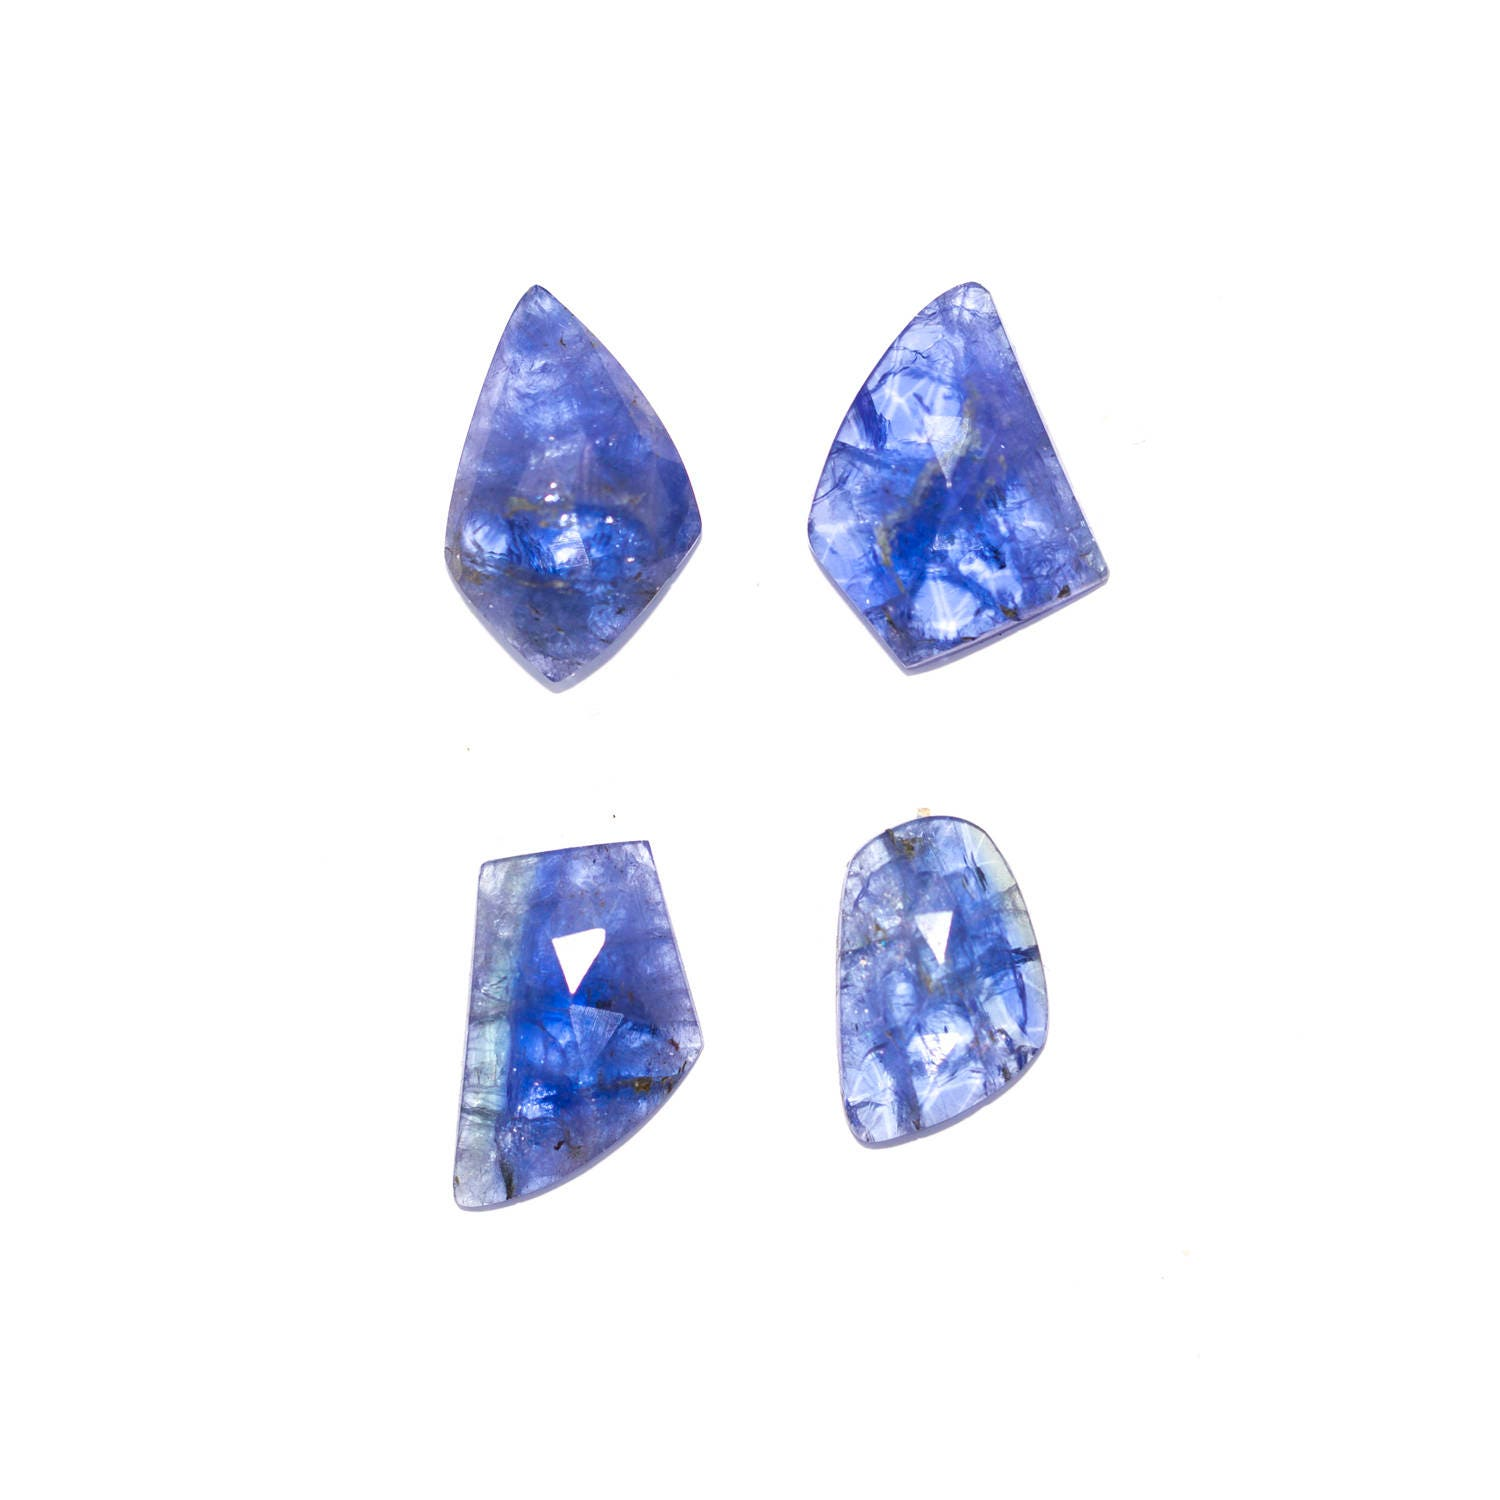 pear purple heated tanzanite tanzania ct loose natural gemstones trillion vs violet r dark shape